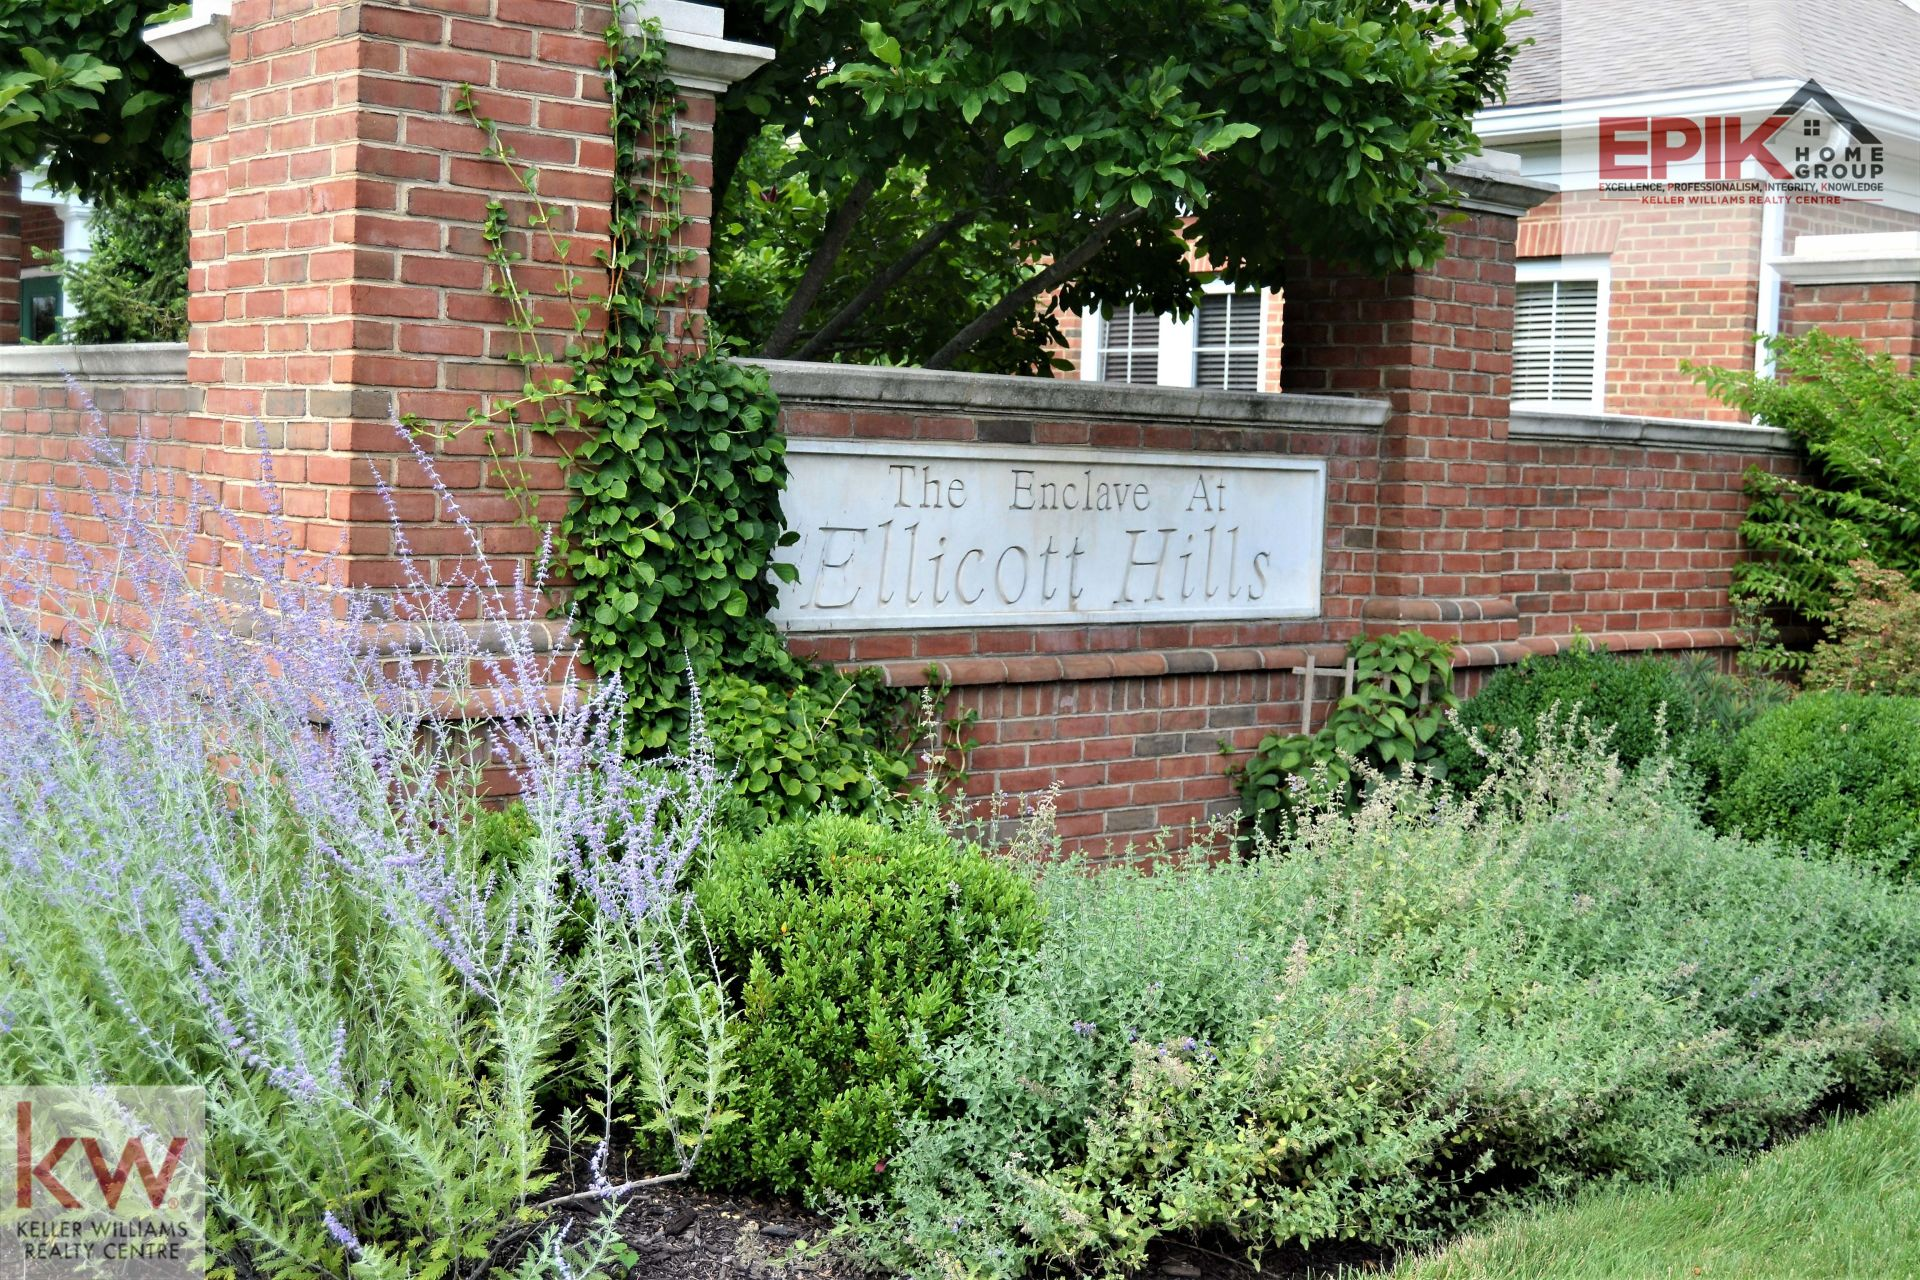 Just Listed- Two Bedroom Ellicott City Condo Perfect for Downsizing